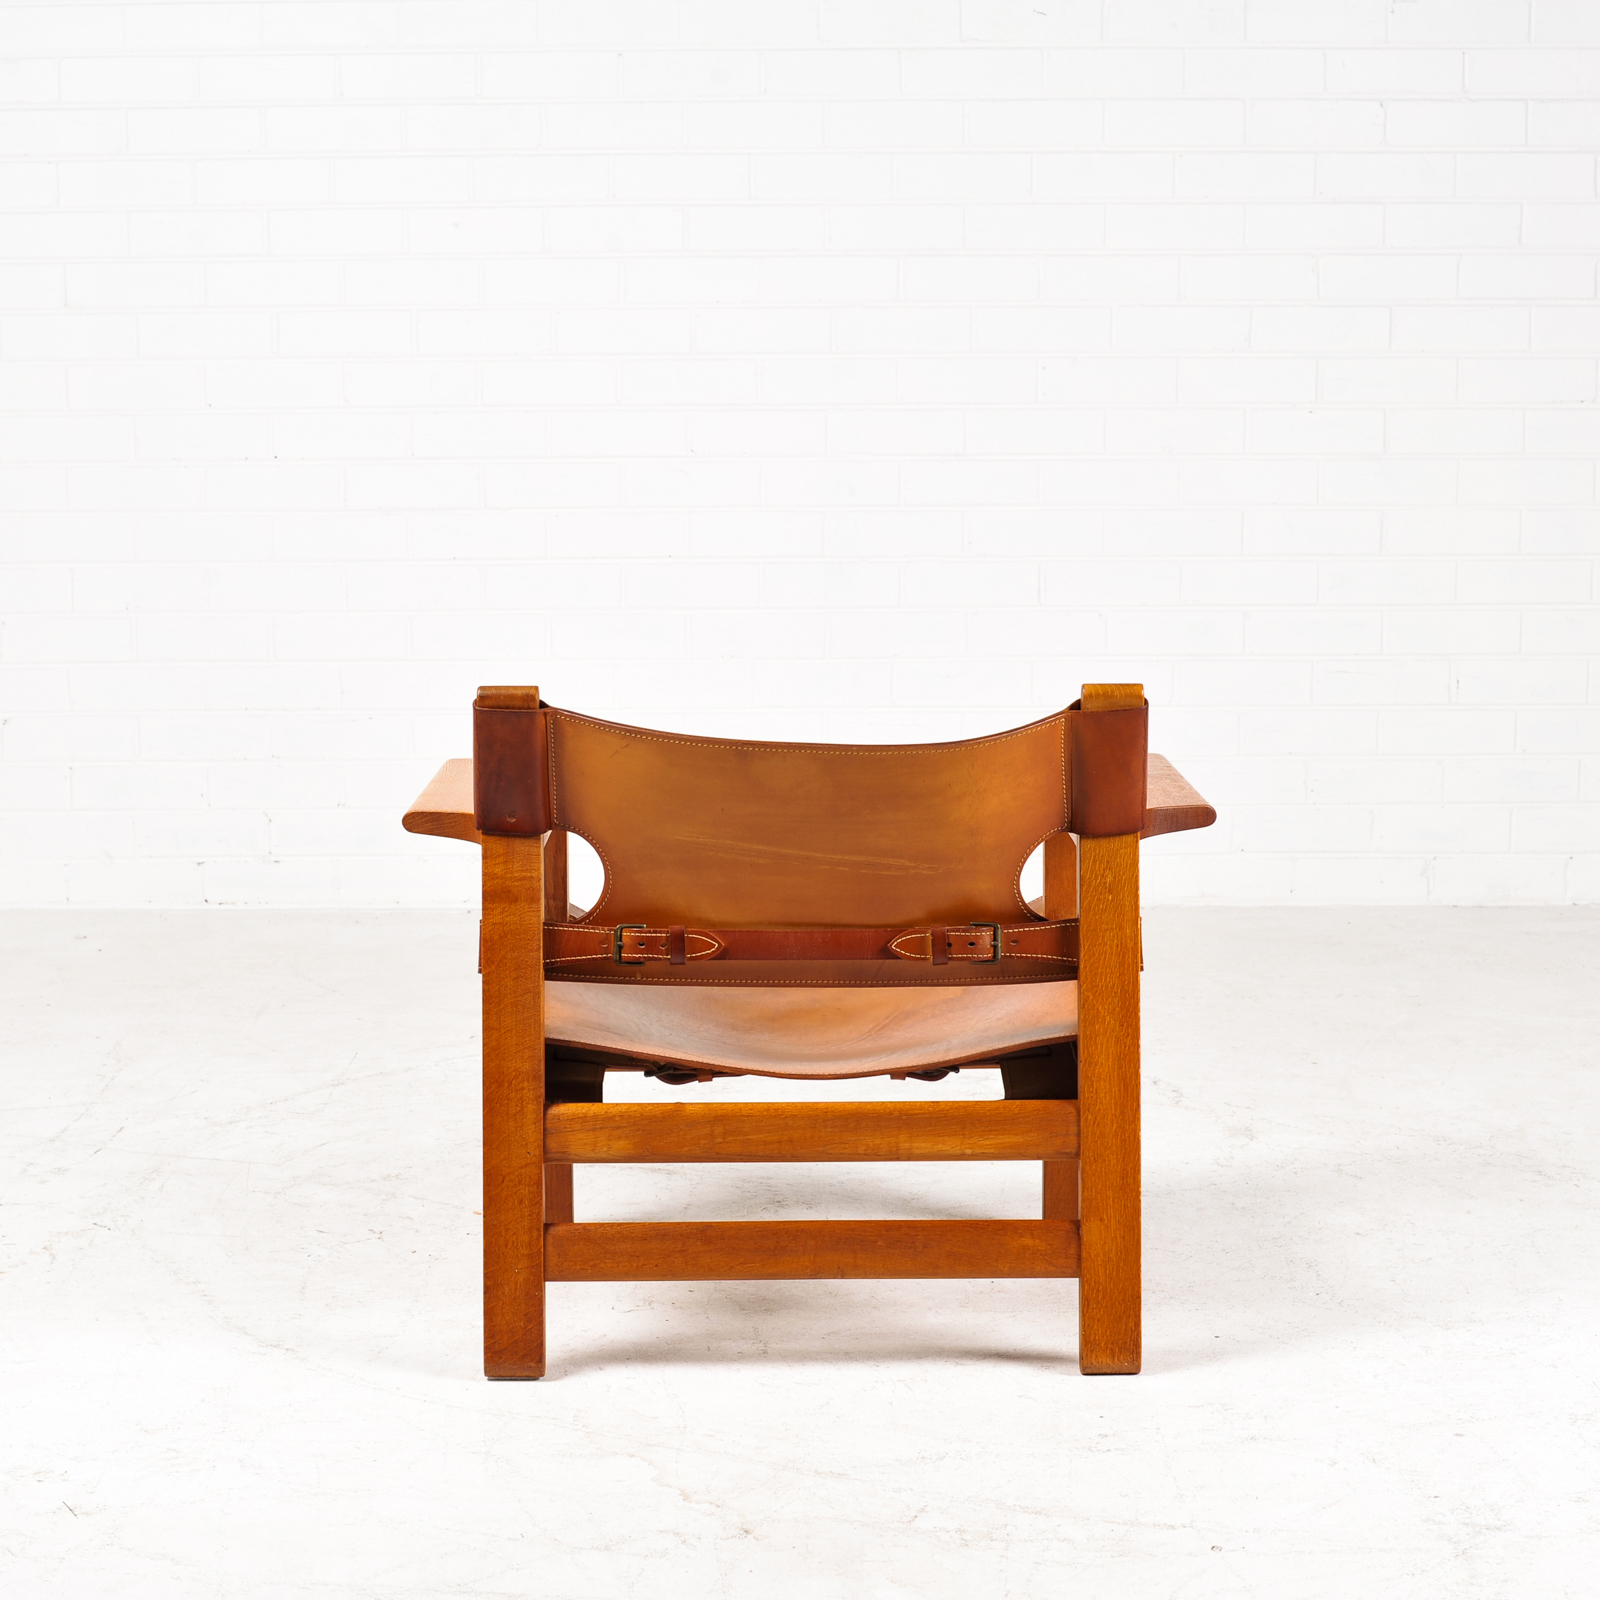 Spanish Chair by Borge Mogensen for Fredericia in Tan Leather, 1950s, Denmark 01